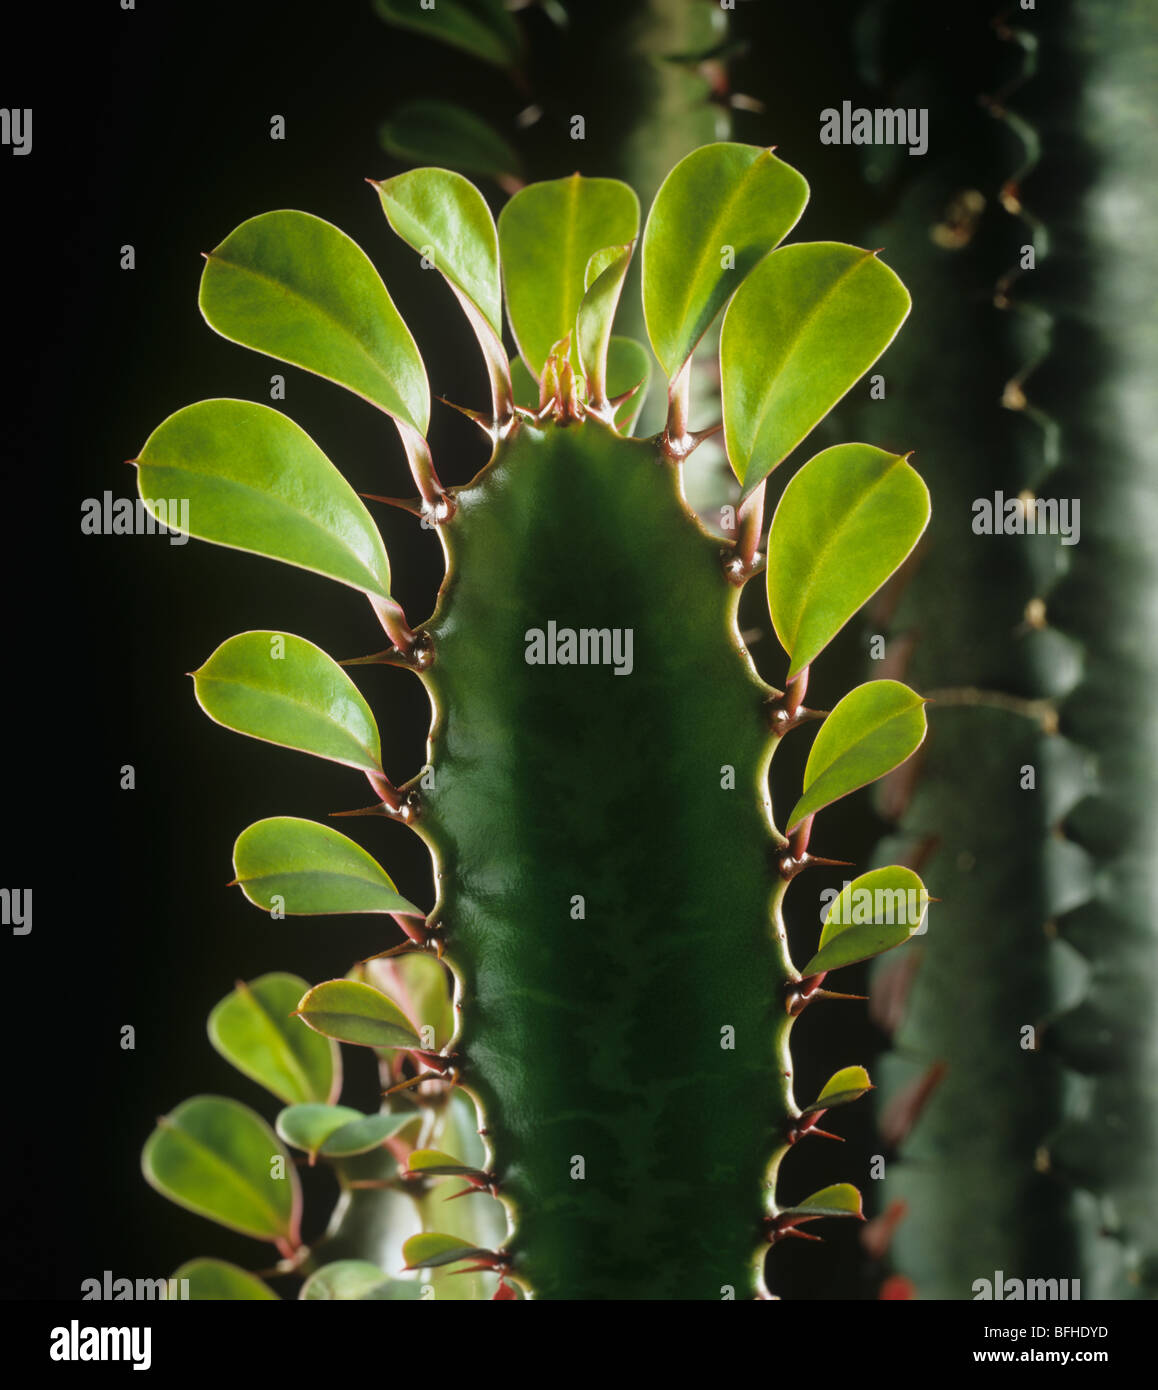 Leaves on the growing point of a cowboy cactus or candelabra tree (Euphorbia ingens) - Stock Image